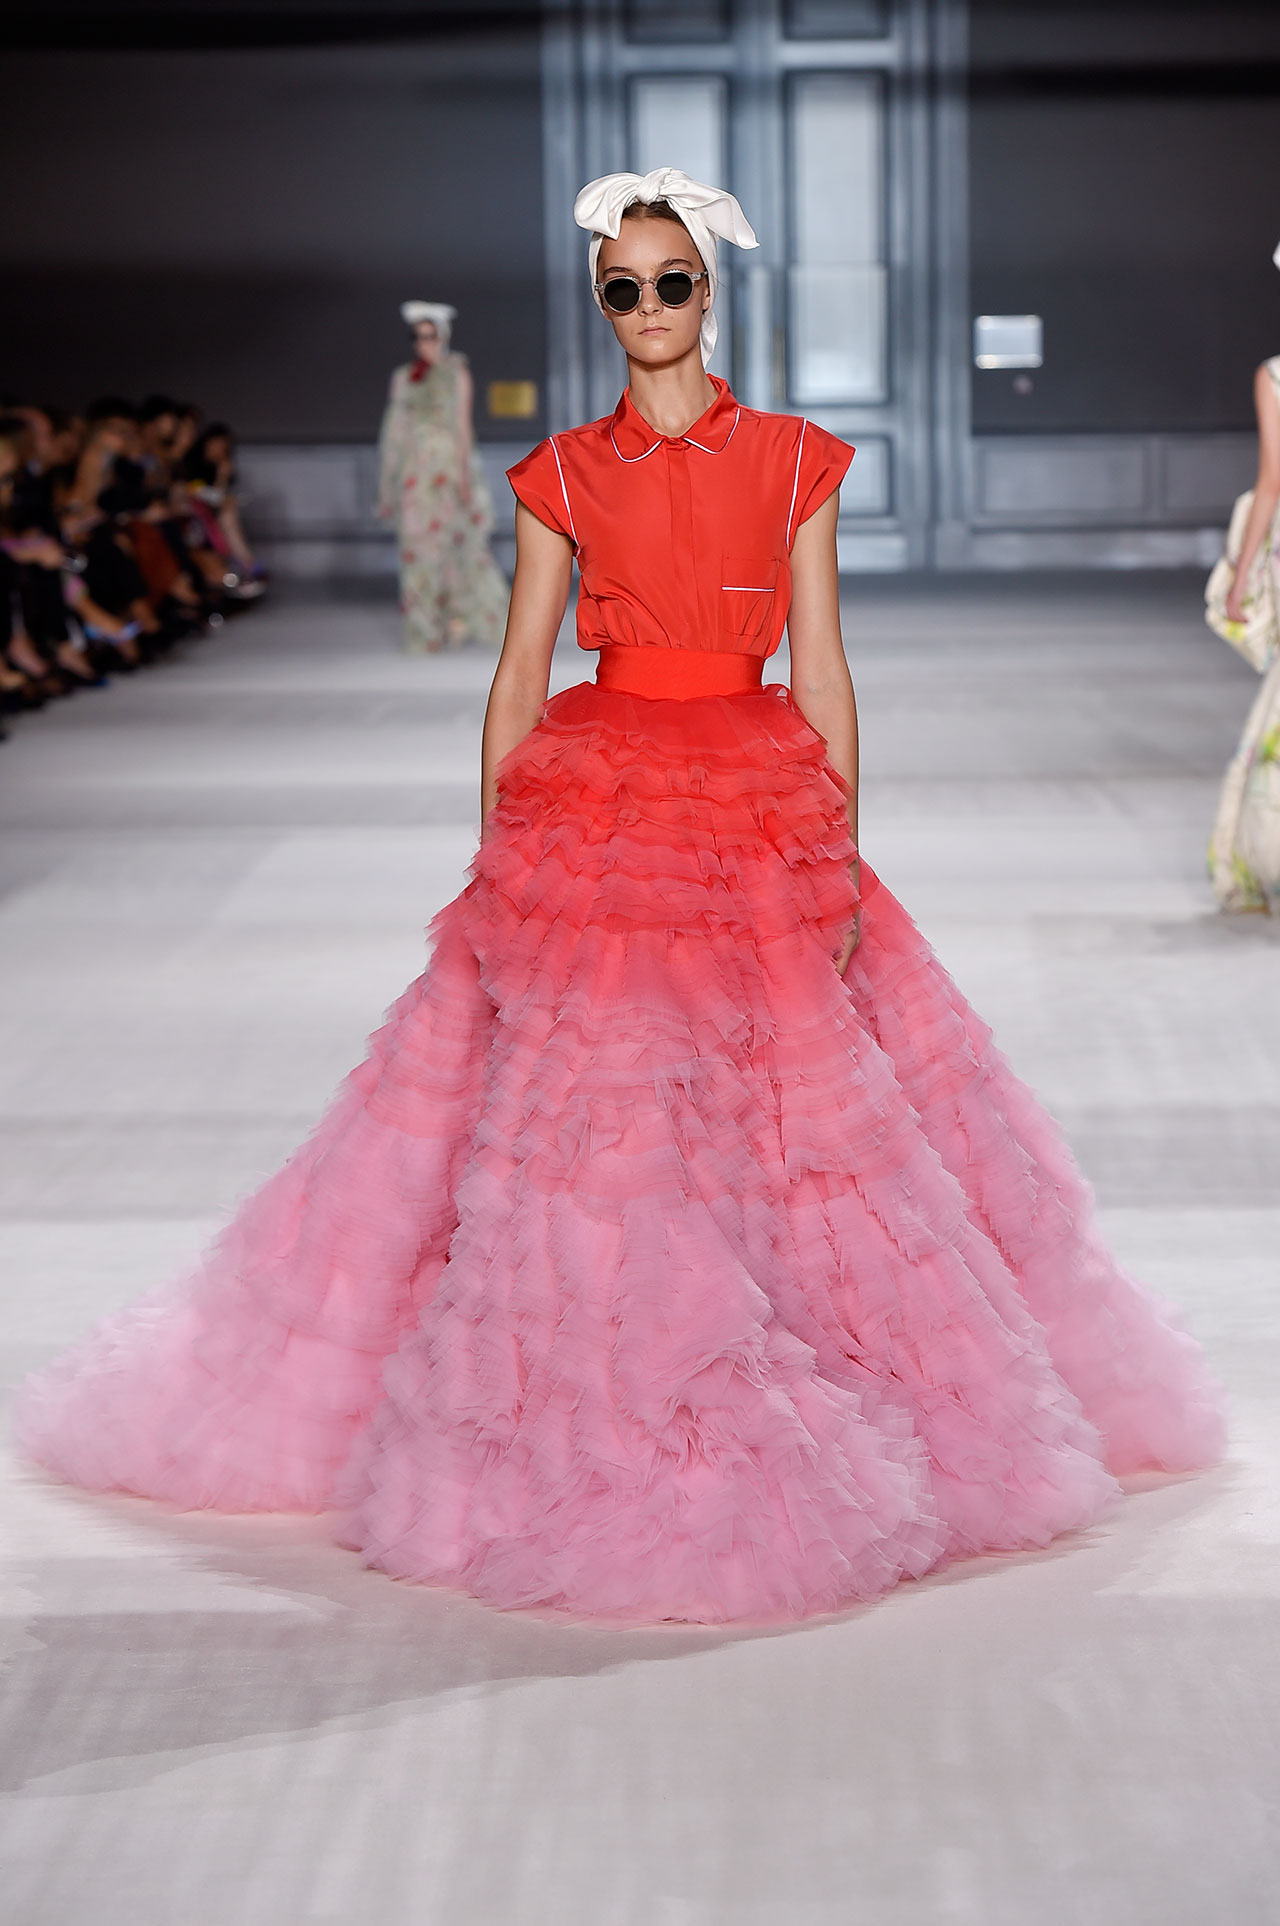 Giambattista Valli, Skirt and top, from Fall / Winter 2014–15 Couture collection, 2014, Tulle degradé, silk taffeta © Giambattista Valli.